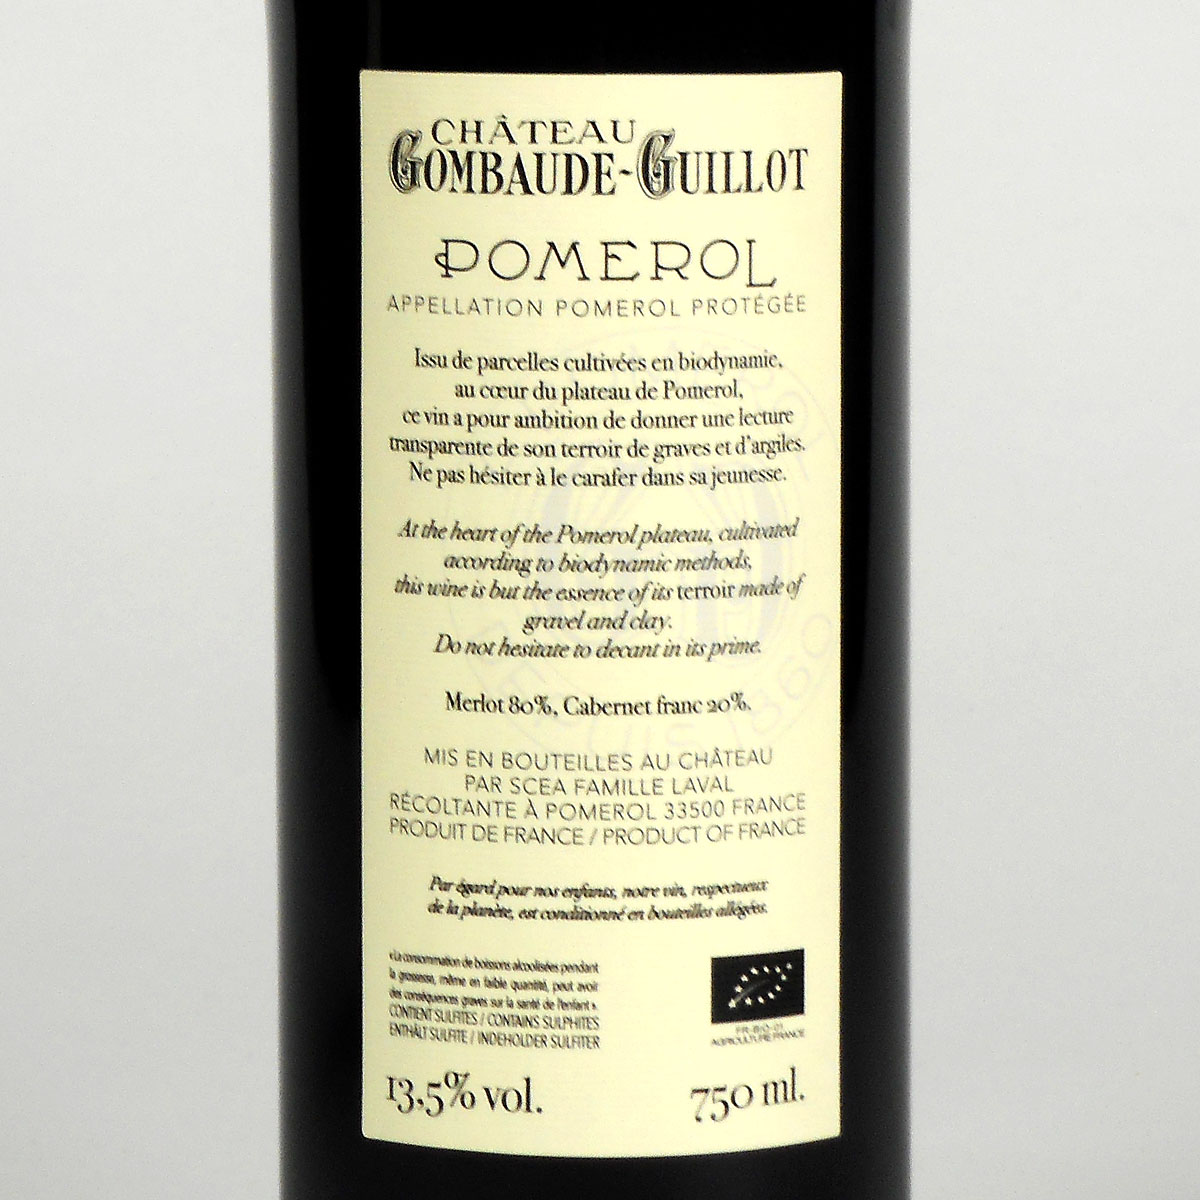 Pomerol: Château Gombaude-Guillot 2014 - Bottle Rear Label